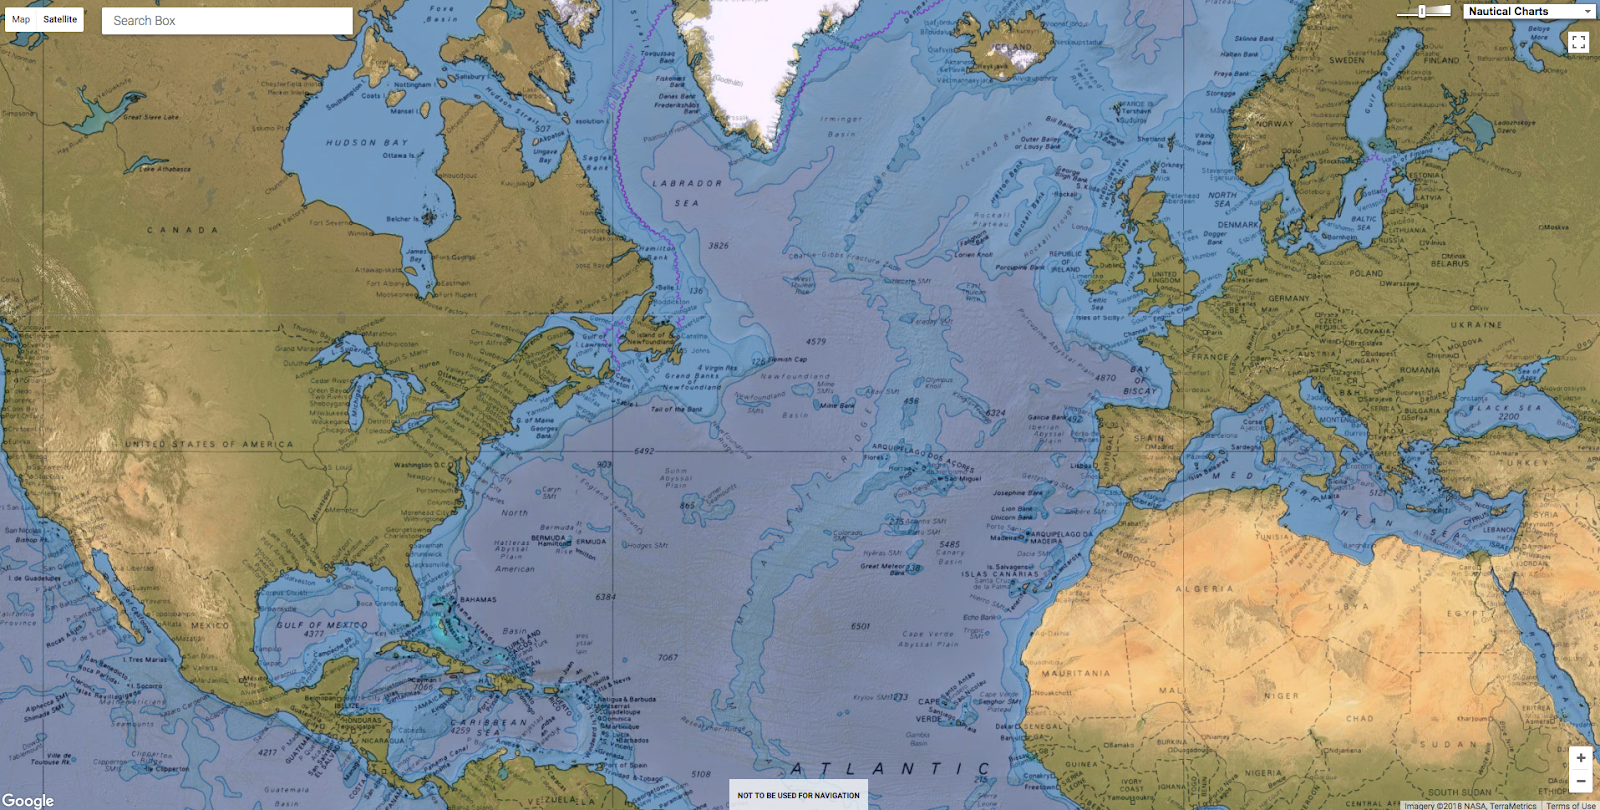 GeoGarage blog: Where do we map next? on map of atlantic ocean map, map of atlantic ocean underwater, map of atlantic ocean currents, map of atlantic ocean shoreline, map of atlantic ocean seabed, map of atlantic ocean basin, map of atlantic ocean coastline,